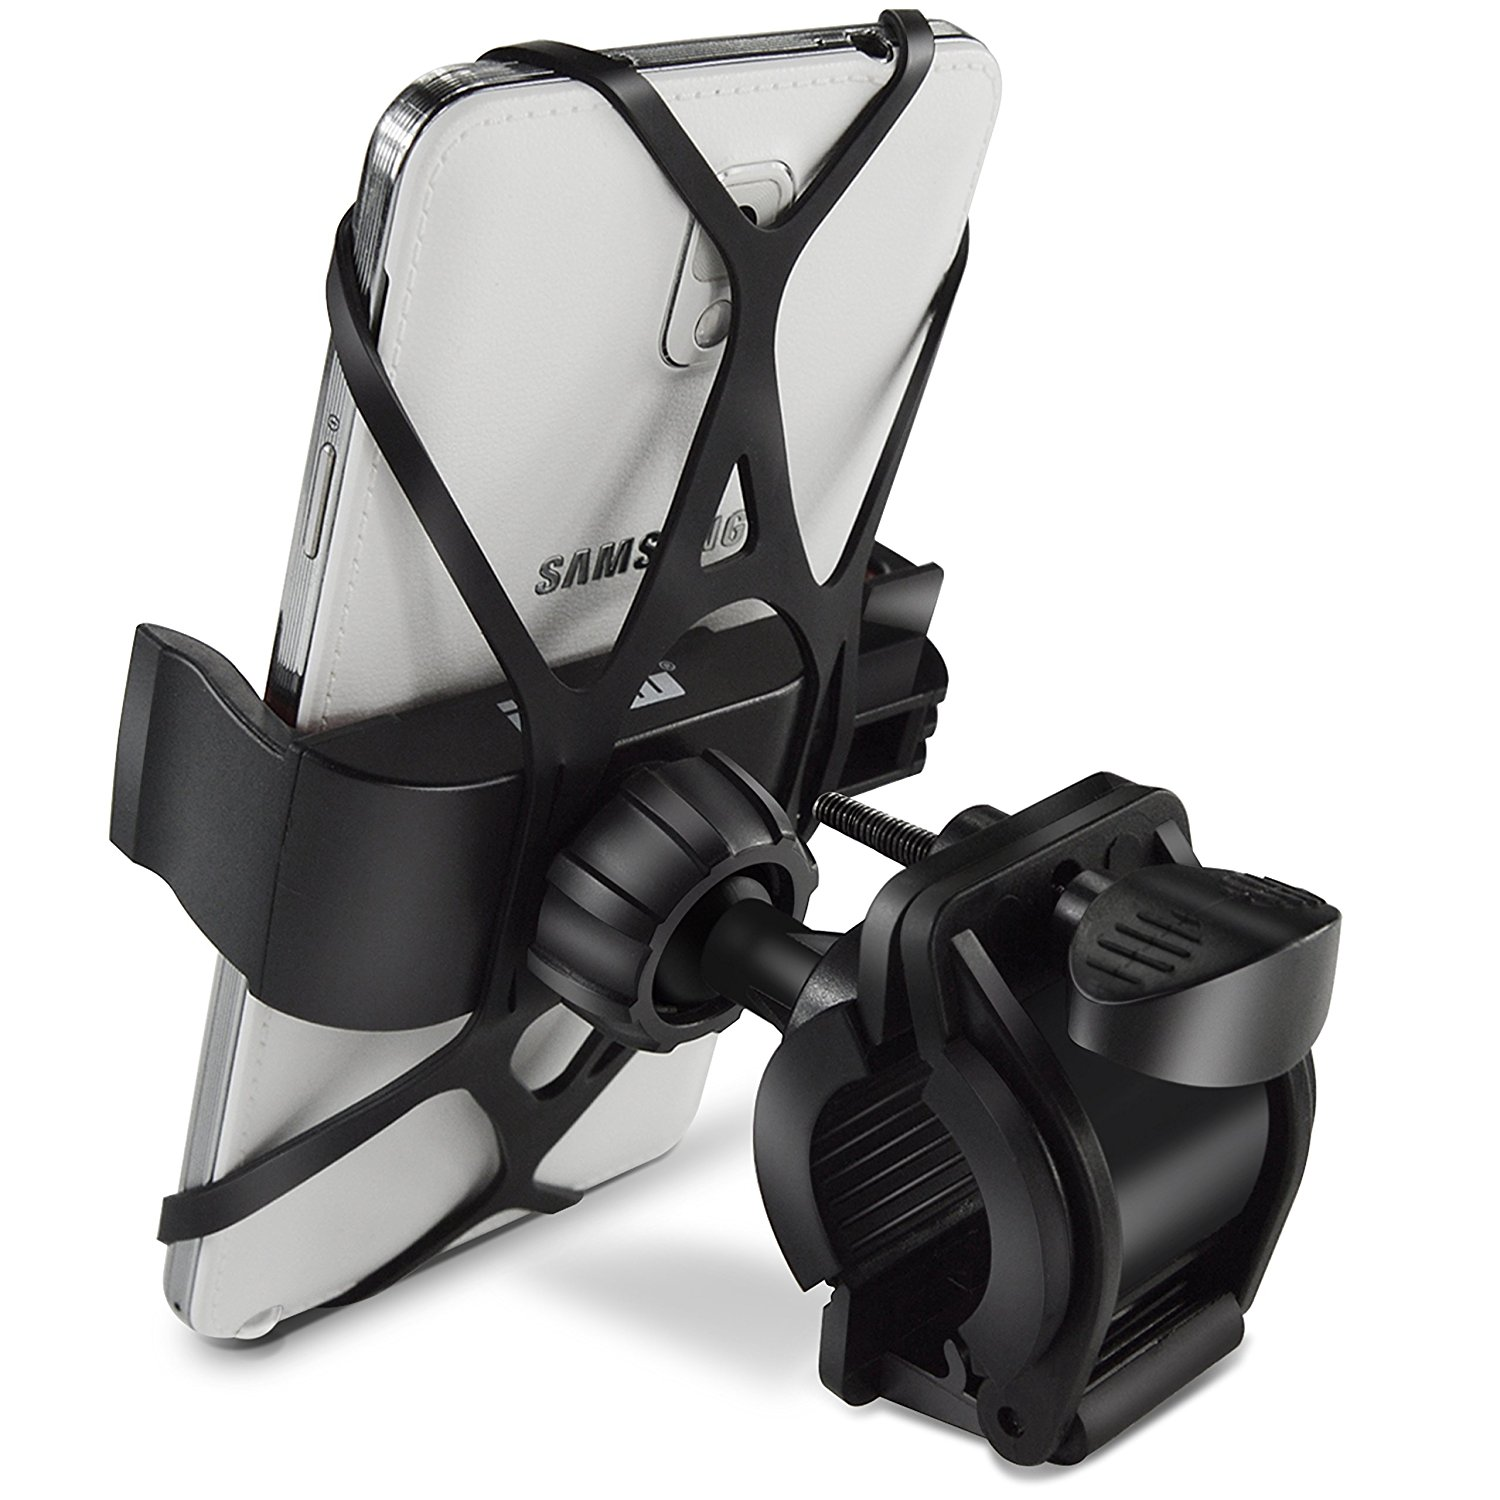 IPOW Universal Phone Bike Mount